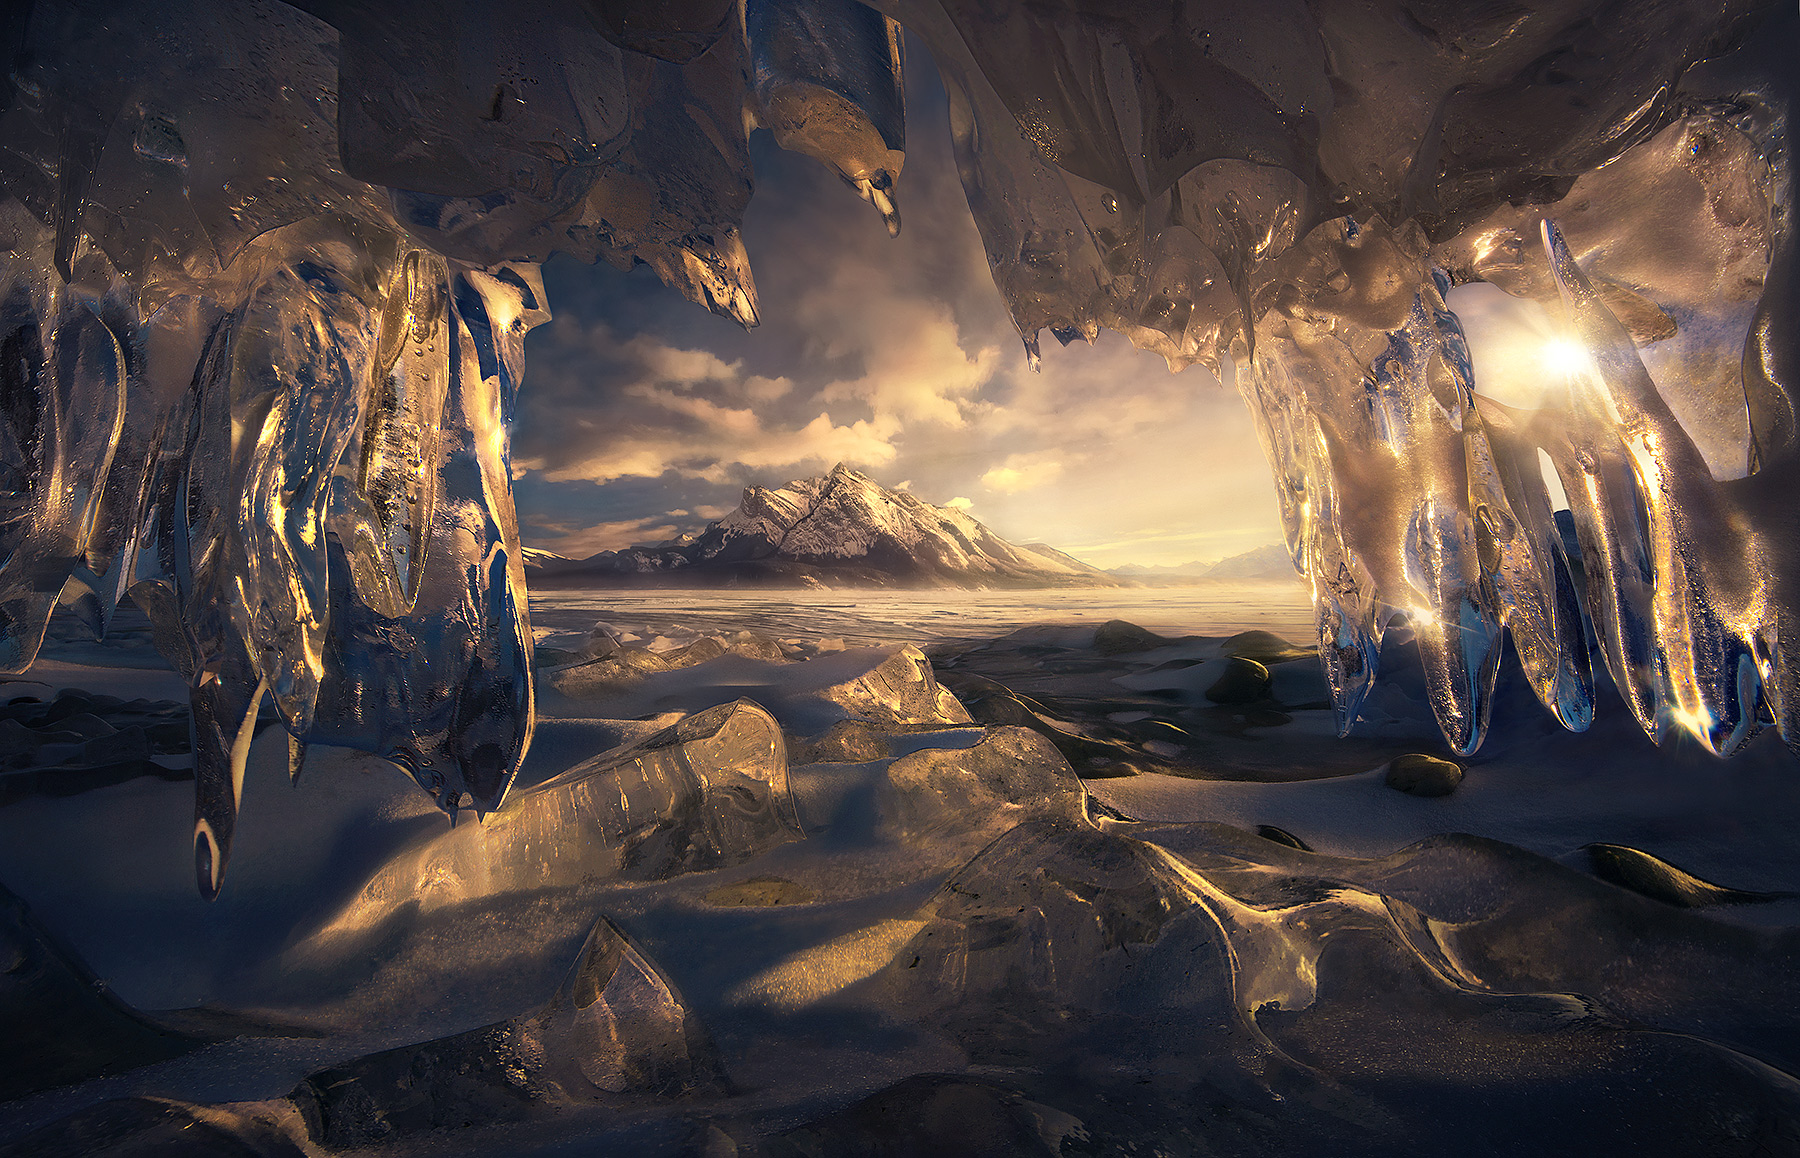 Inside an incredible, sparkling, really really small ice cave looking out.